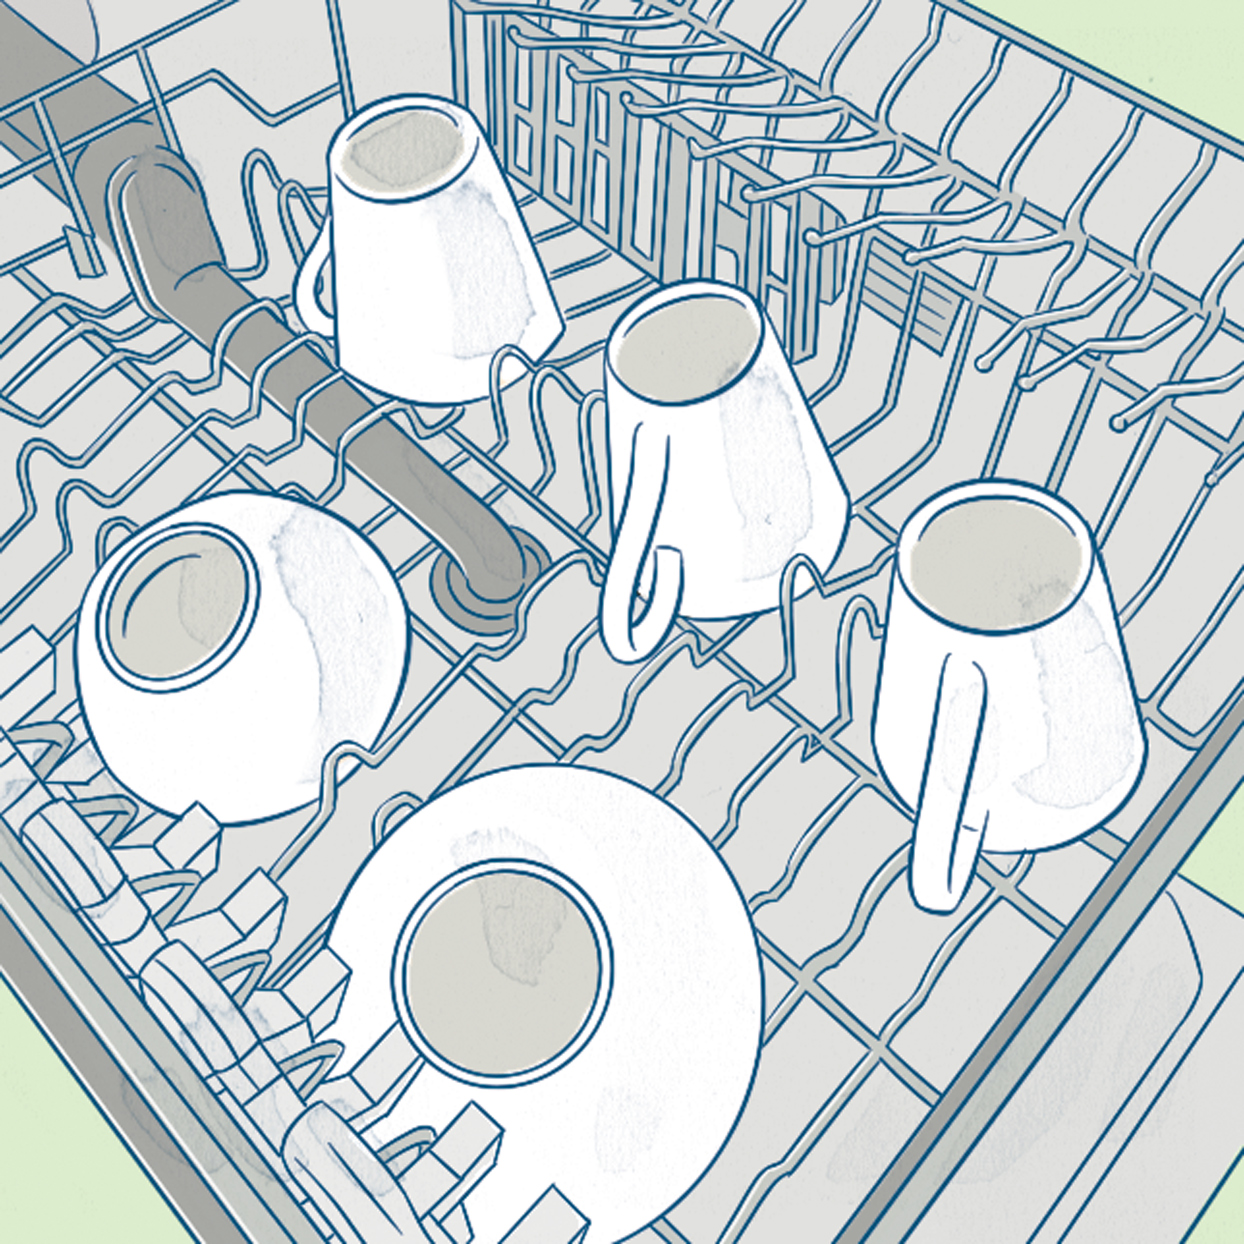 cups and bowls in dishwasher illustration